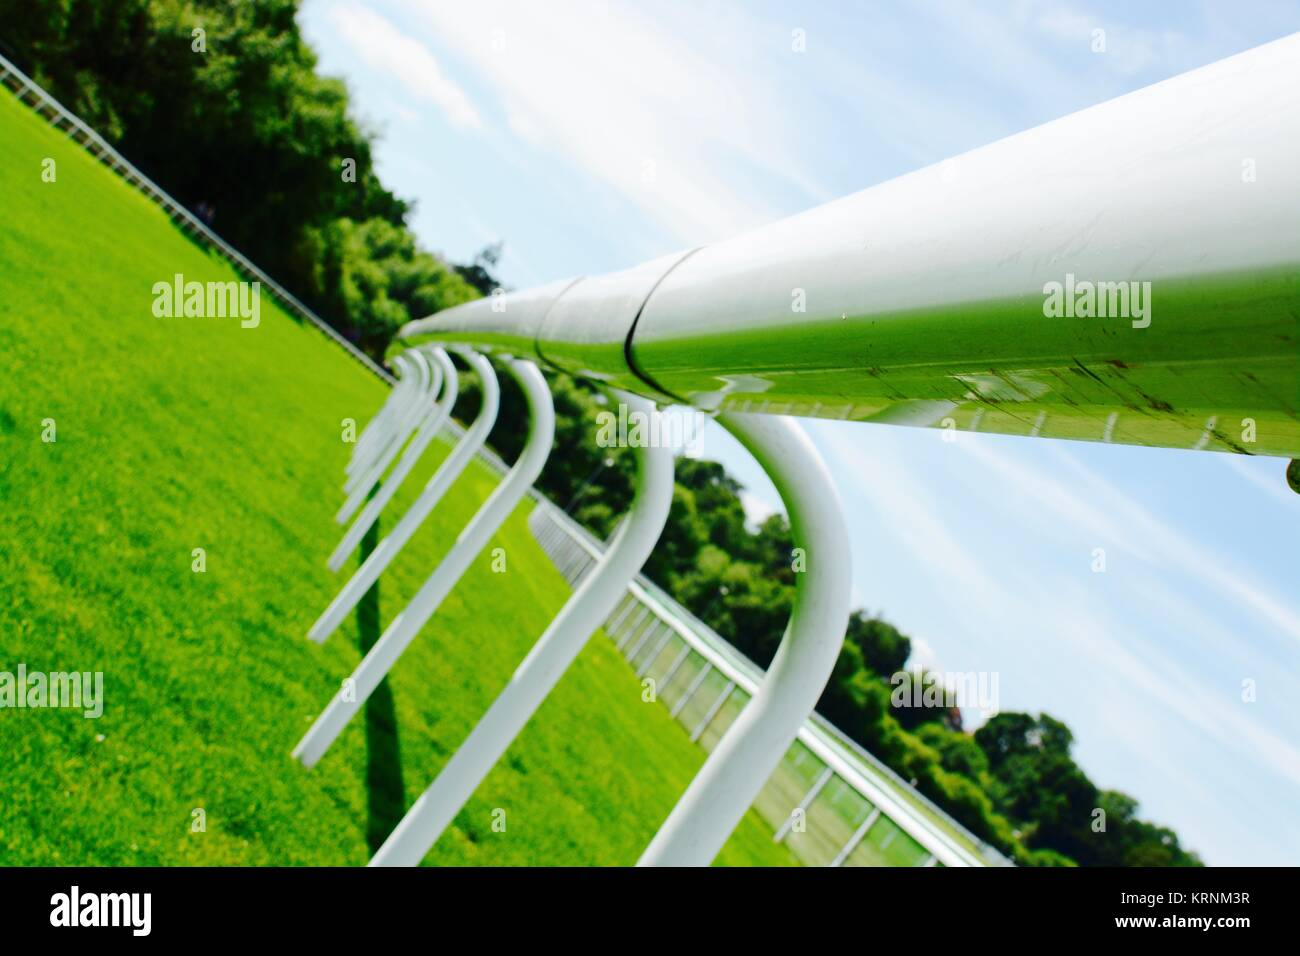 White fence at a horse race track - Stock Image